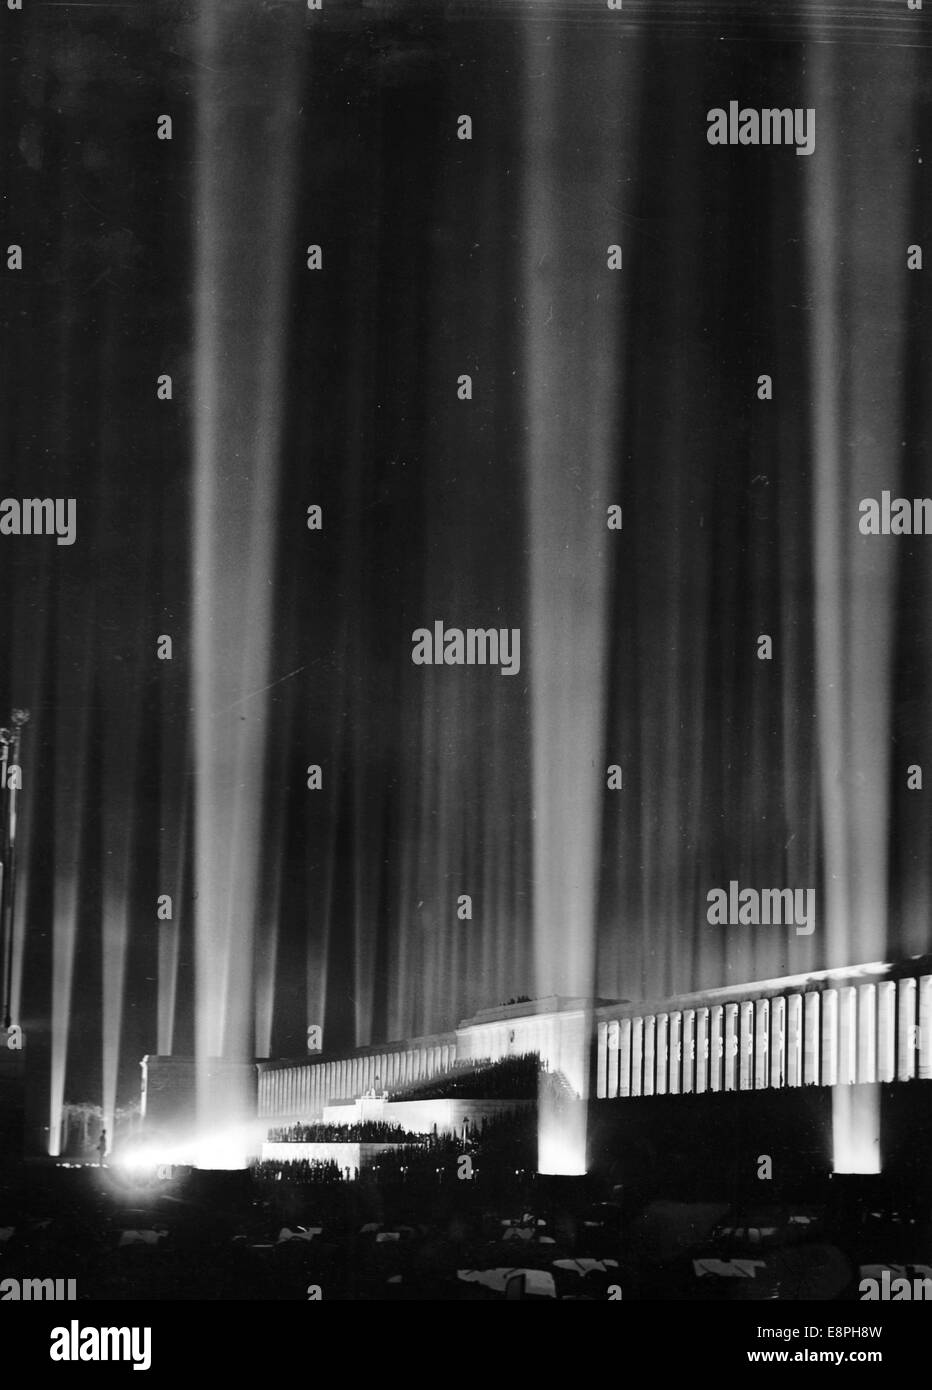 Nuremberg Rally 1936 in Nuremberg, Germany - Hundreds of searchlights flare up and illuminate the night sky after - Stock Image